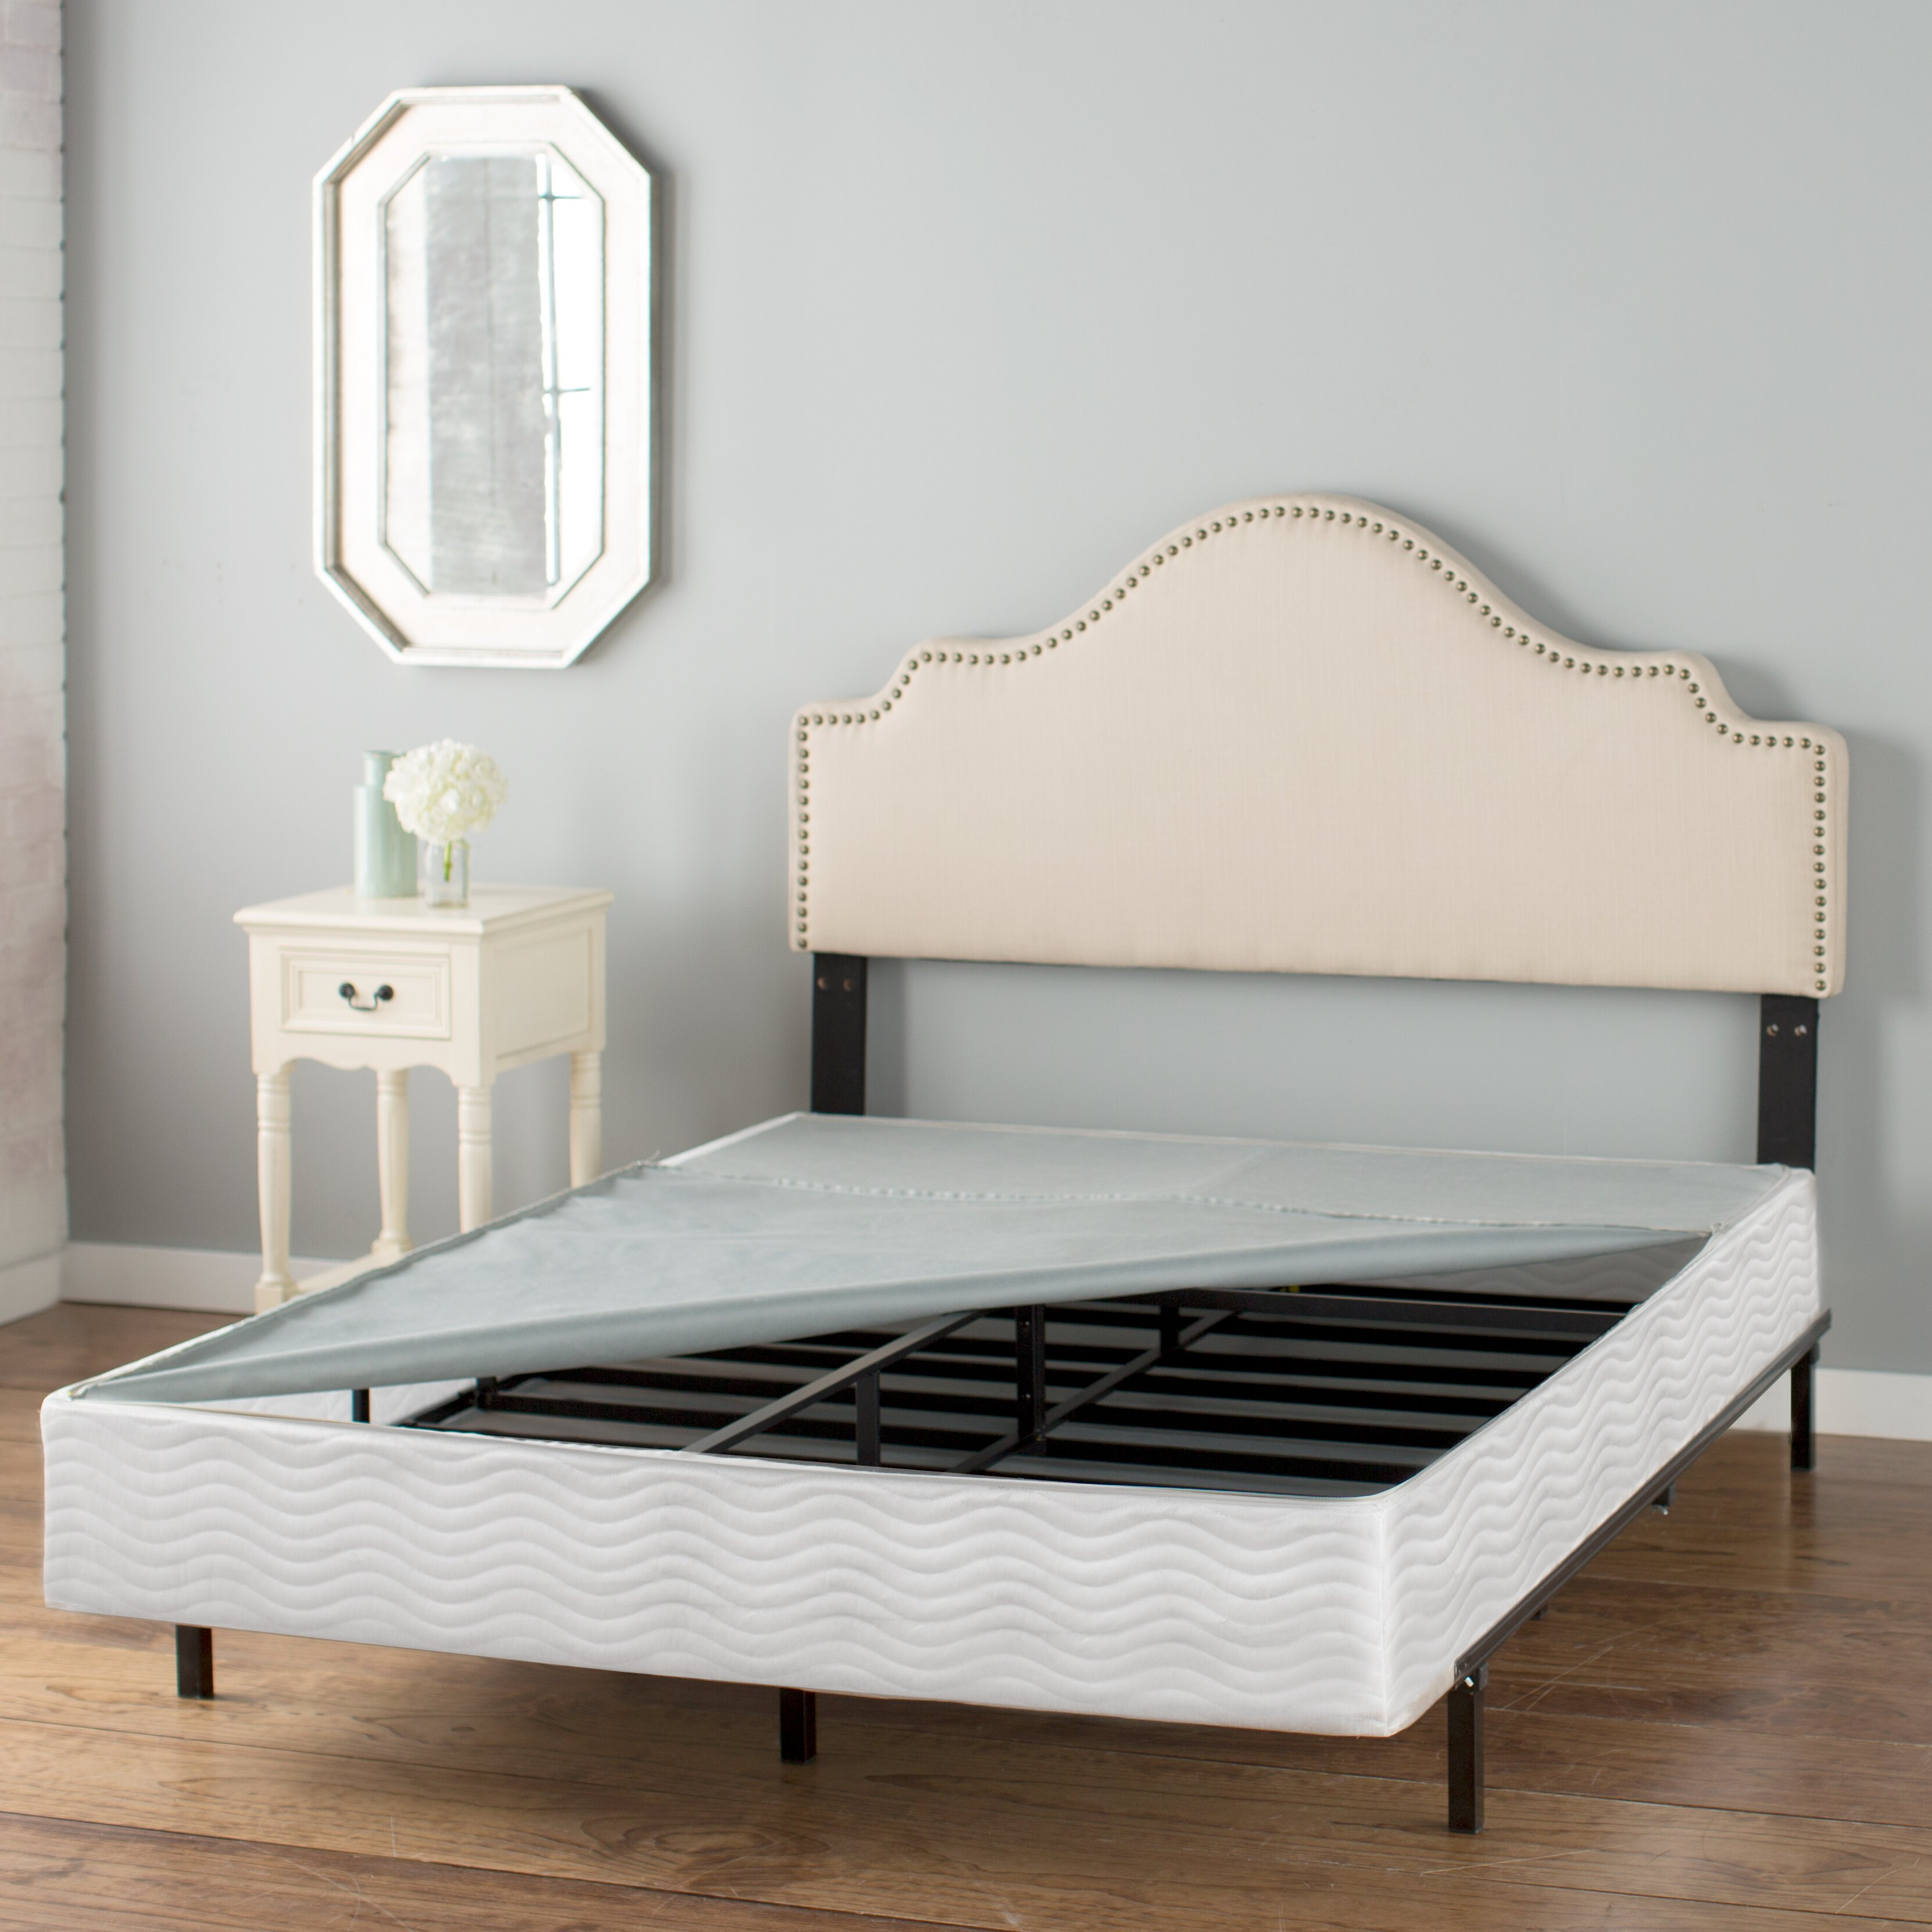 wayfair sleep wayfair sleep standard box spring reviews wayfair. Black Bedroom Furniture Sets. Home Design Ideas